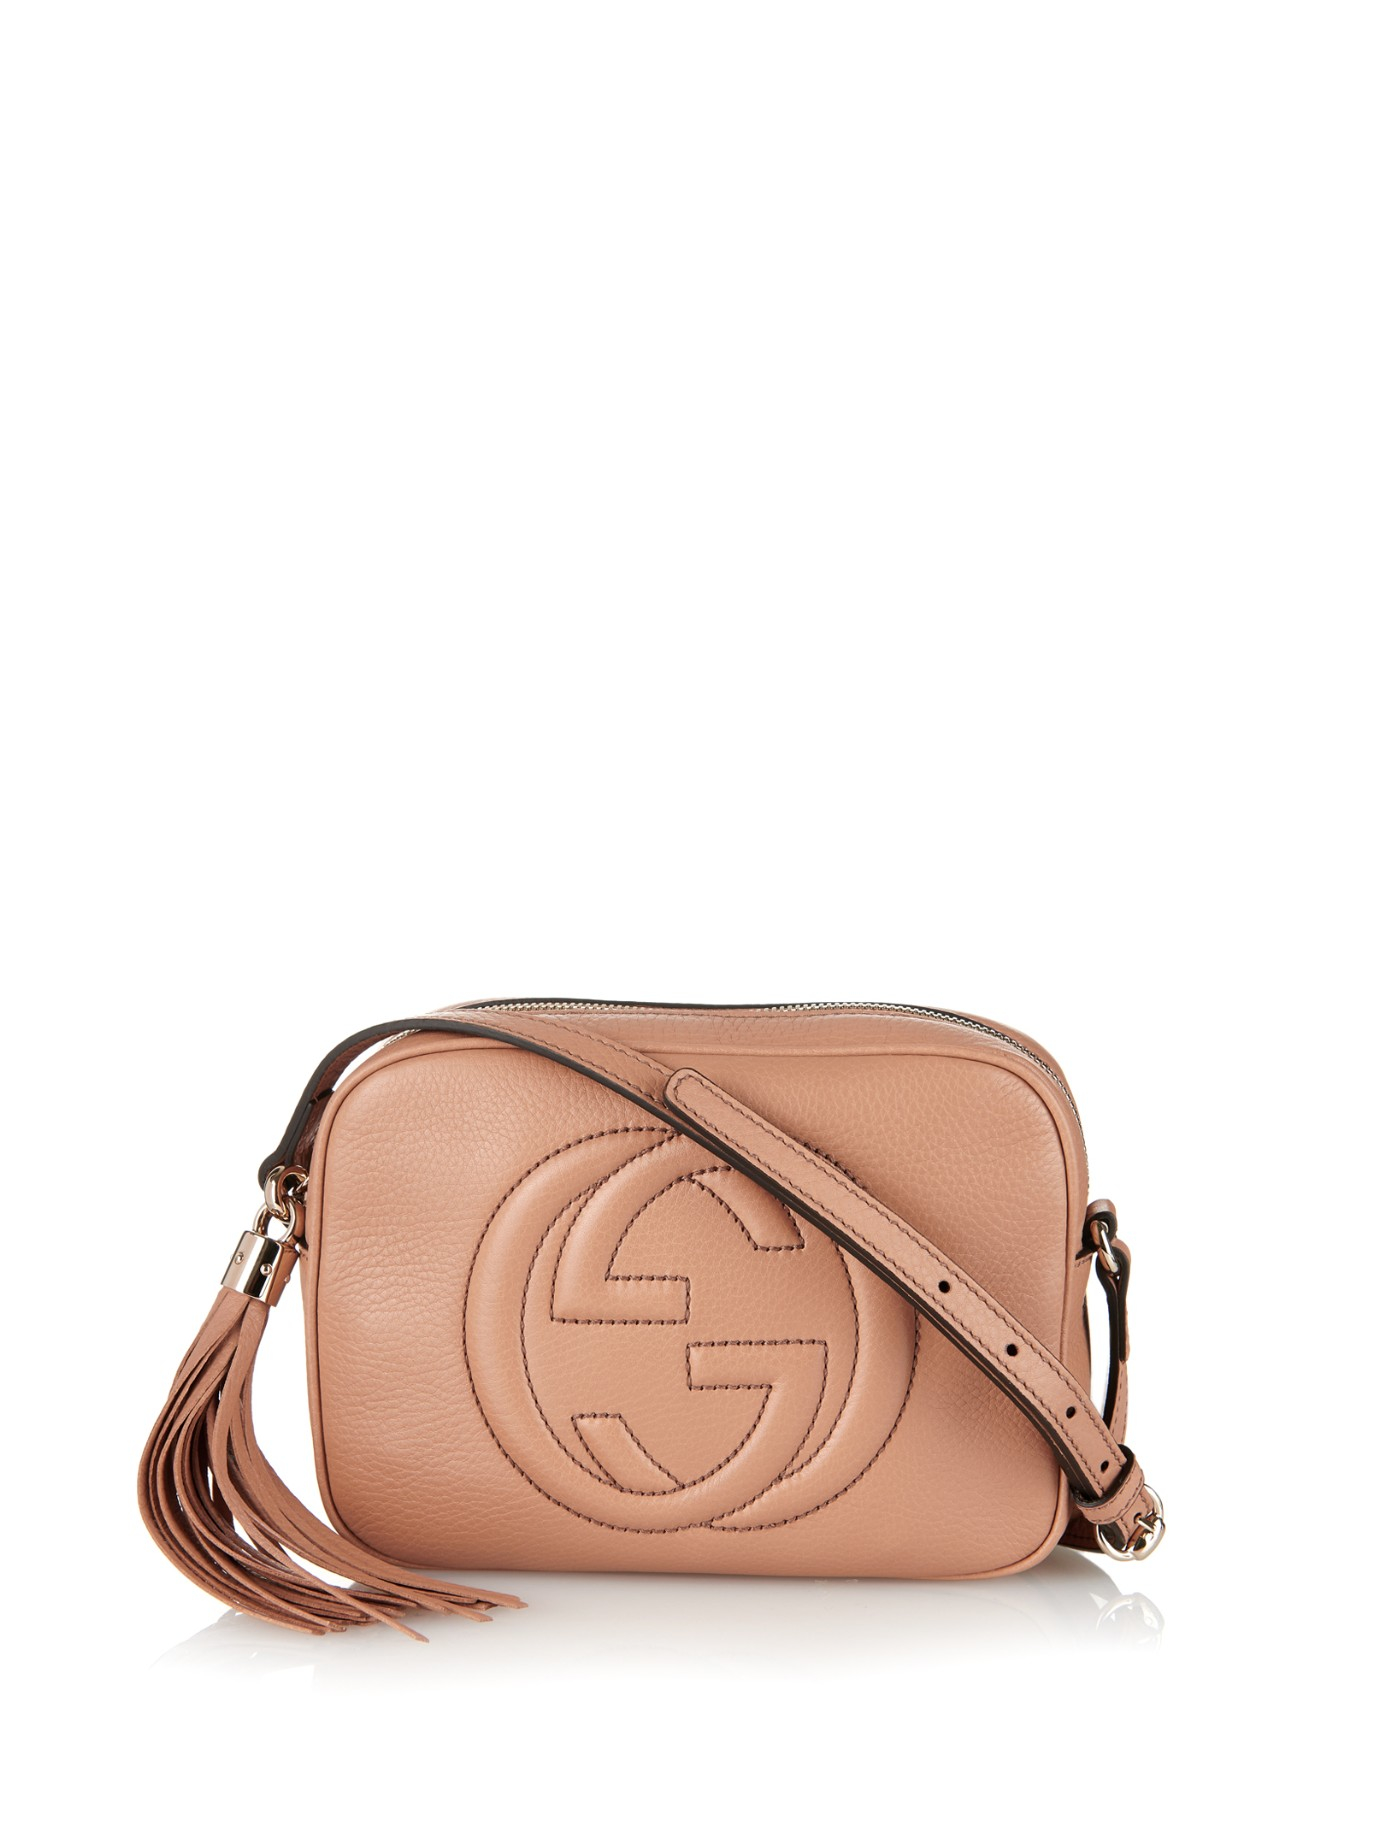 fde3f5a18110 Lyst - Gucci Soho Leather Cross-body Bag in Brown